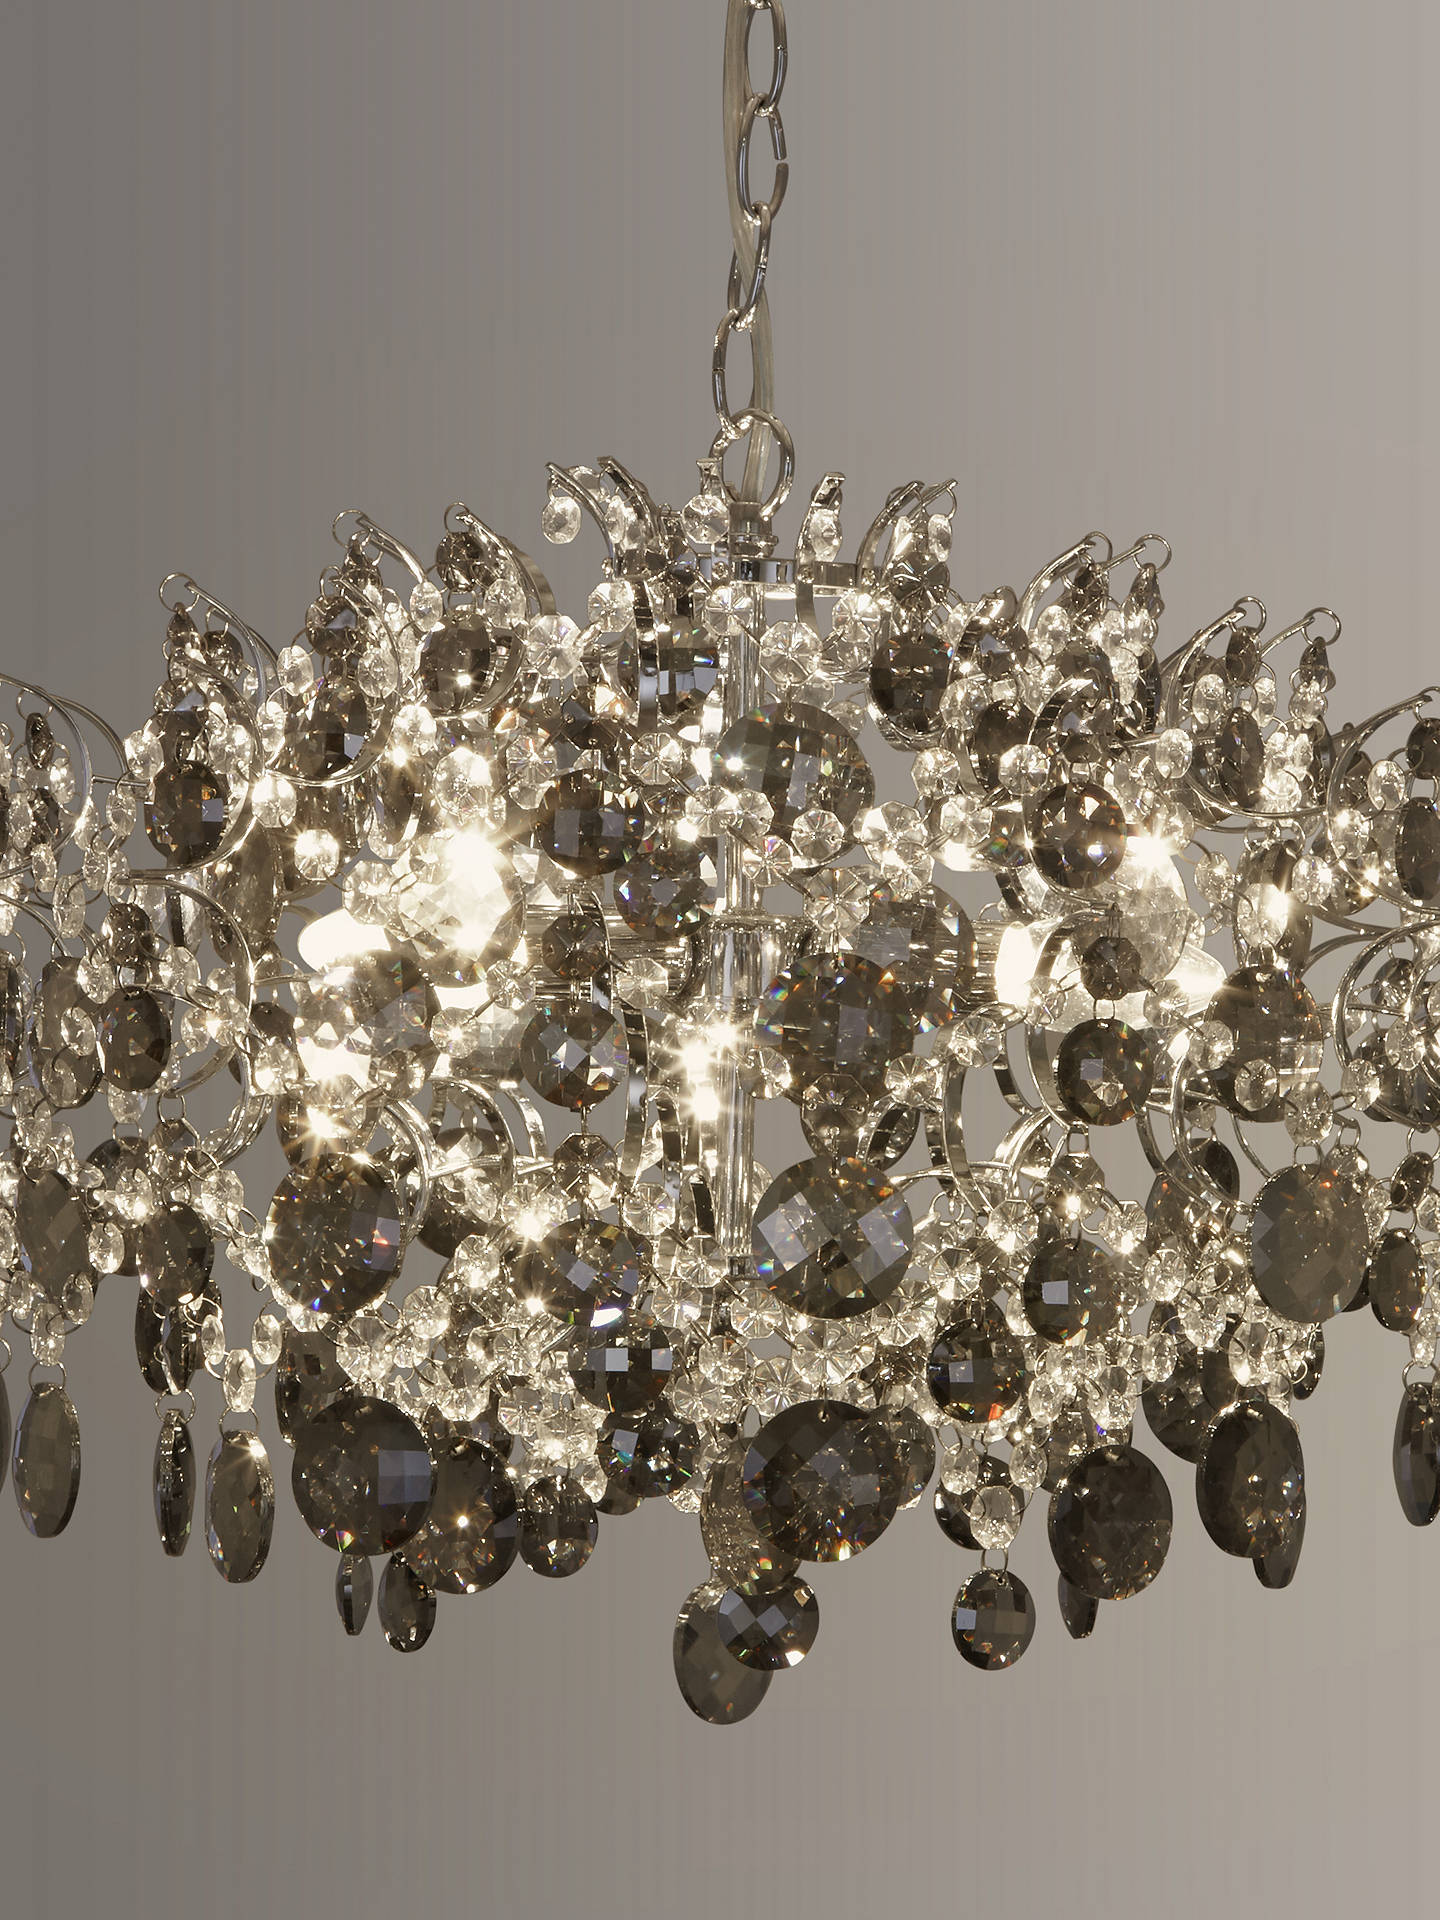 Buy John Lewis & Partners Paris Smoke & Clear Crystal Ceiling Light Online at johnlewis.com